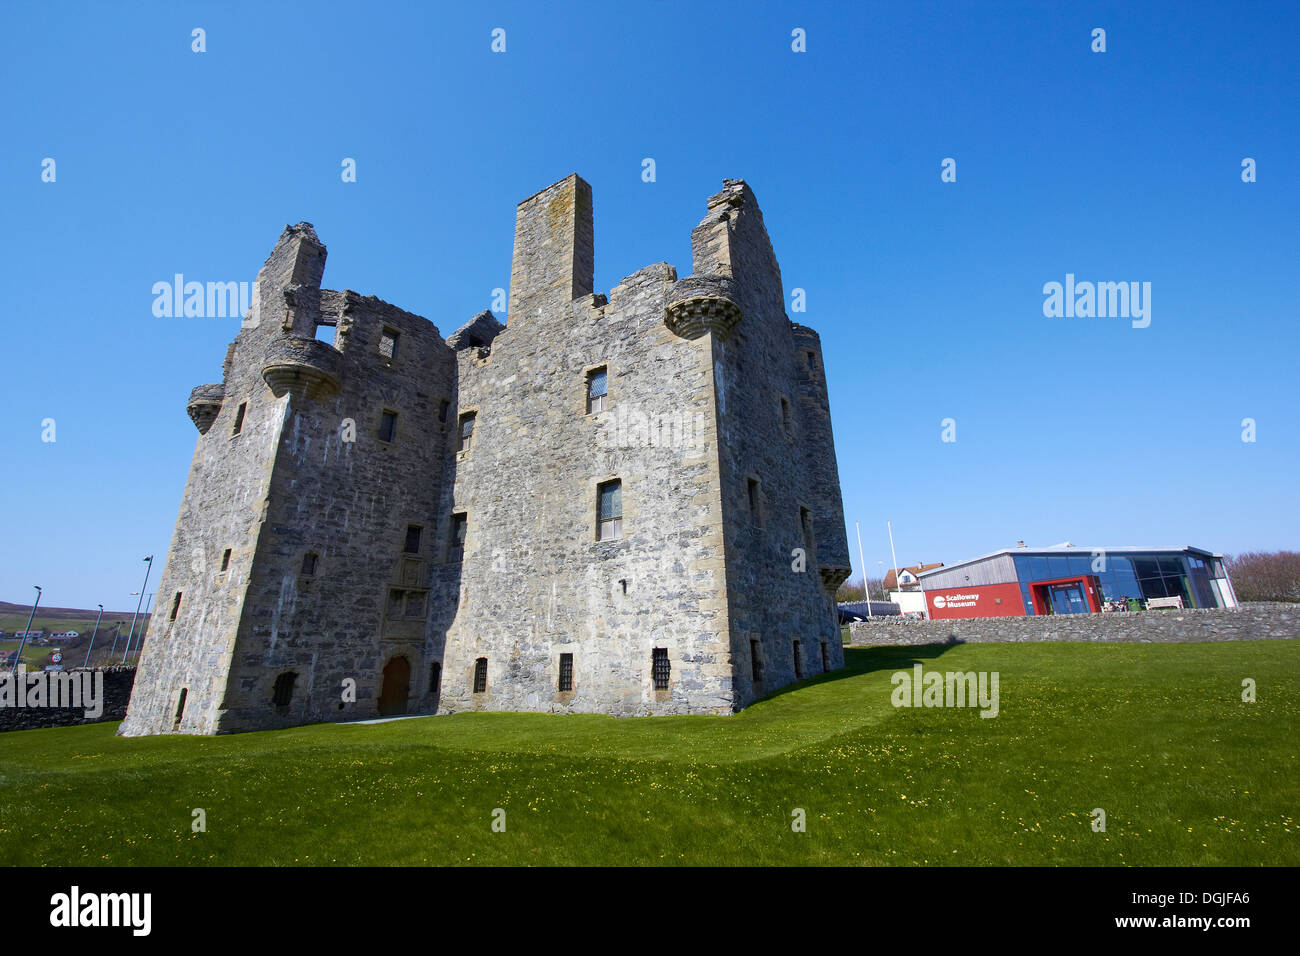 Scalloway Castle and museum. - Stock Image